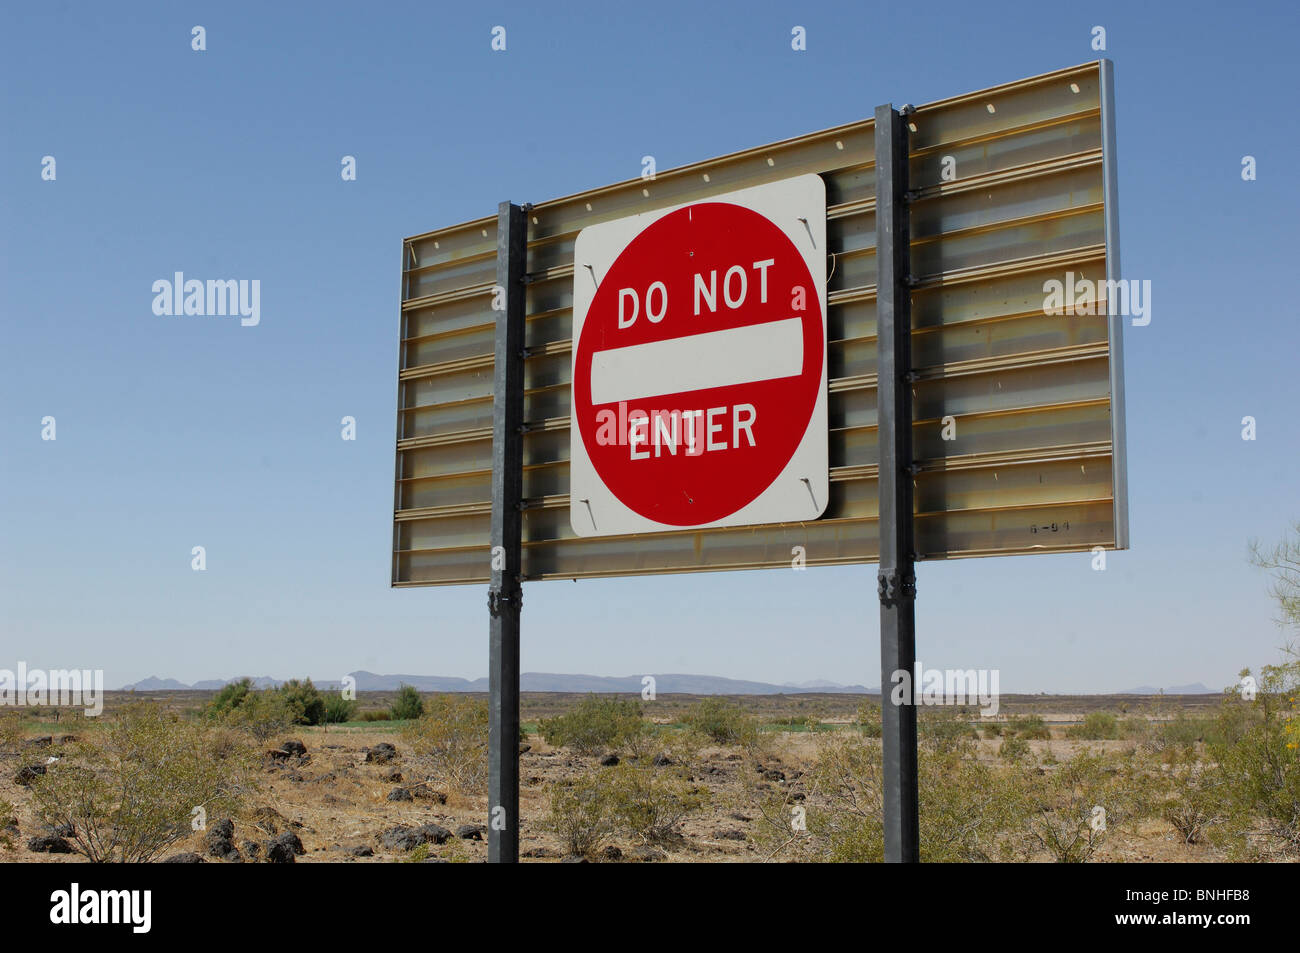 Usa Yuma Arizona Do Not Enter Sign Highway Near Yuma One Way Traffic Warning Prohibitory Prohibit Road Desert - Stock Image